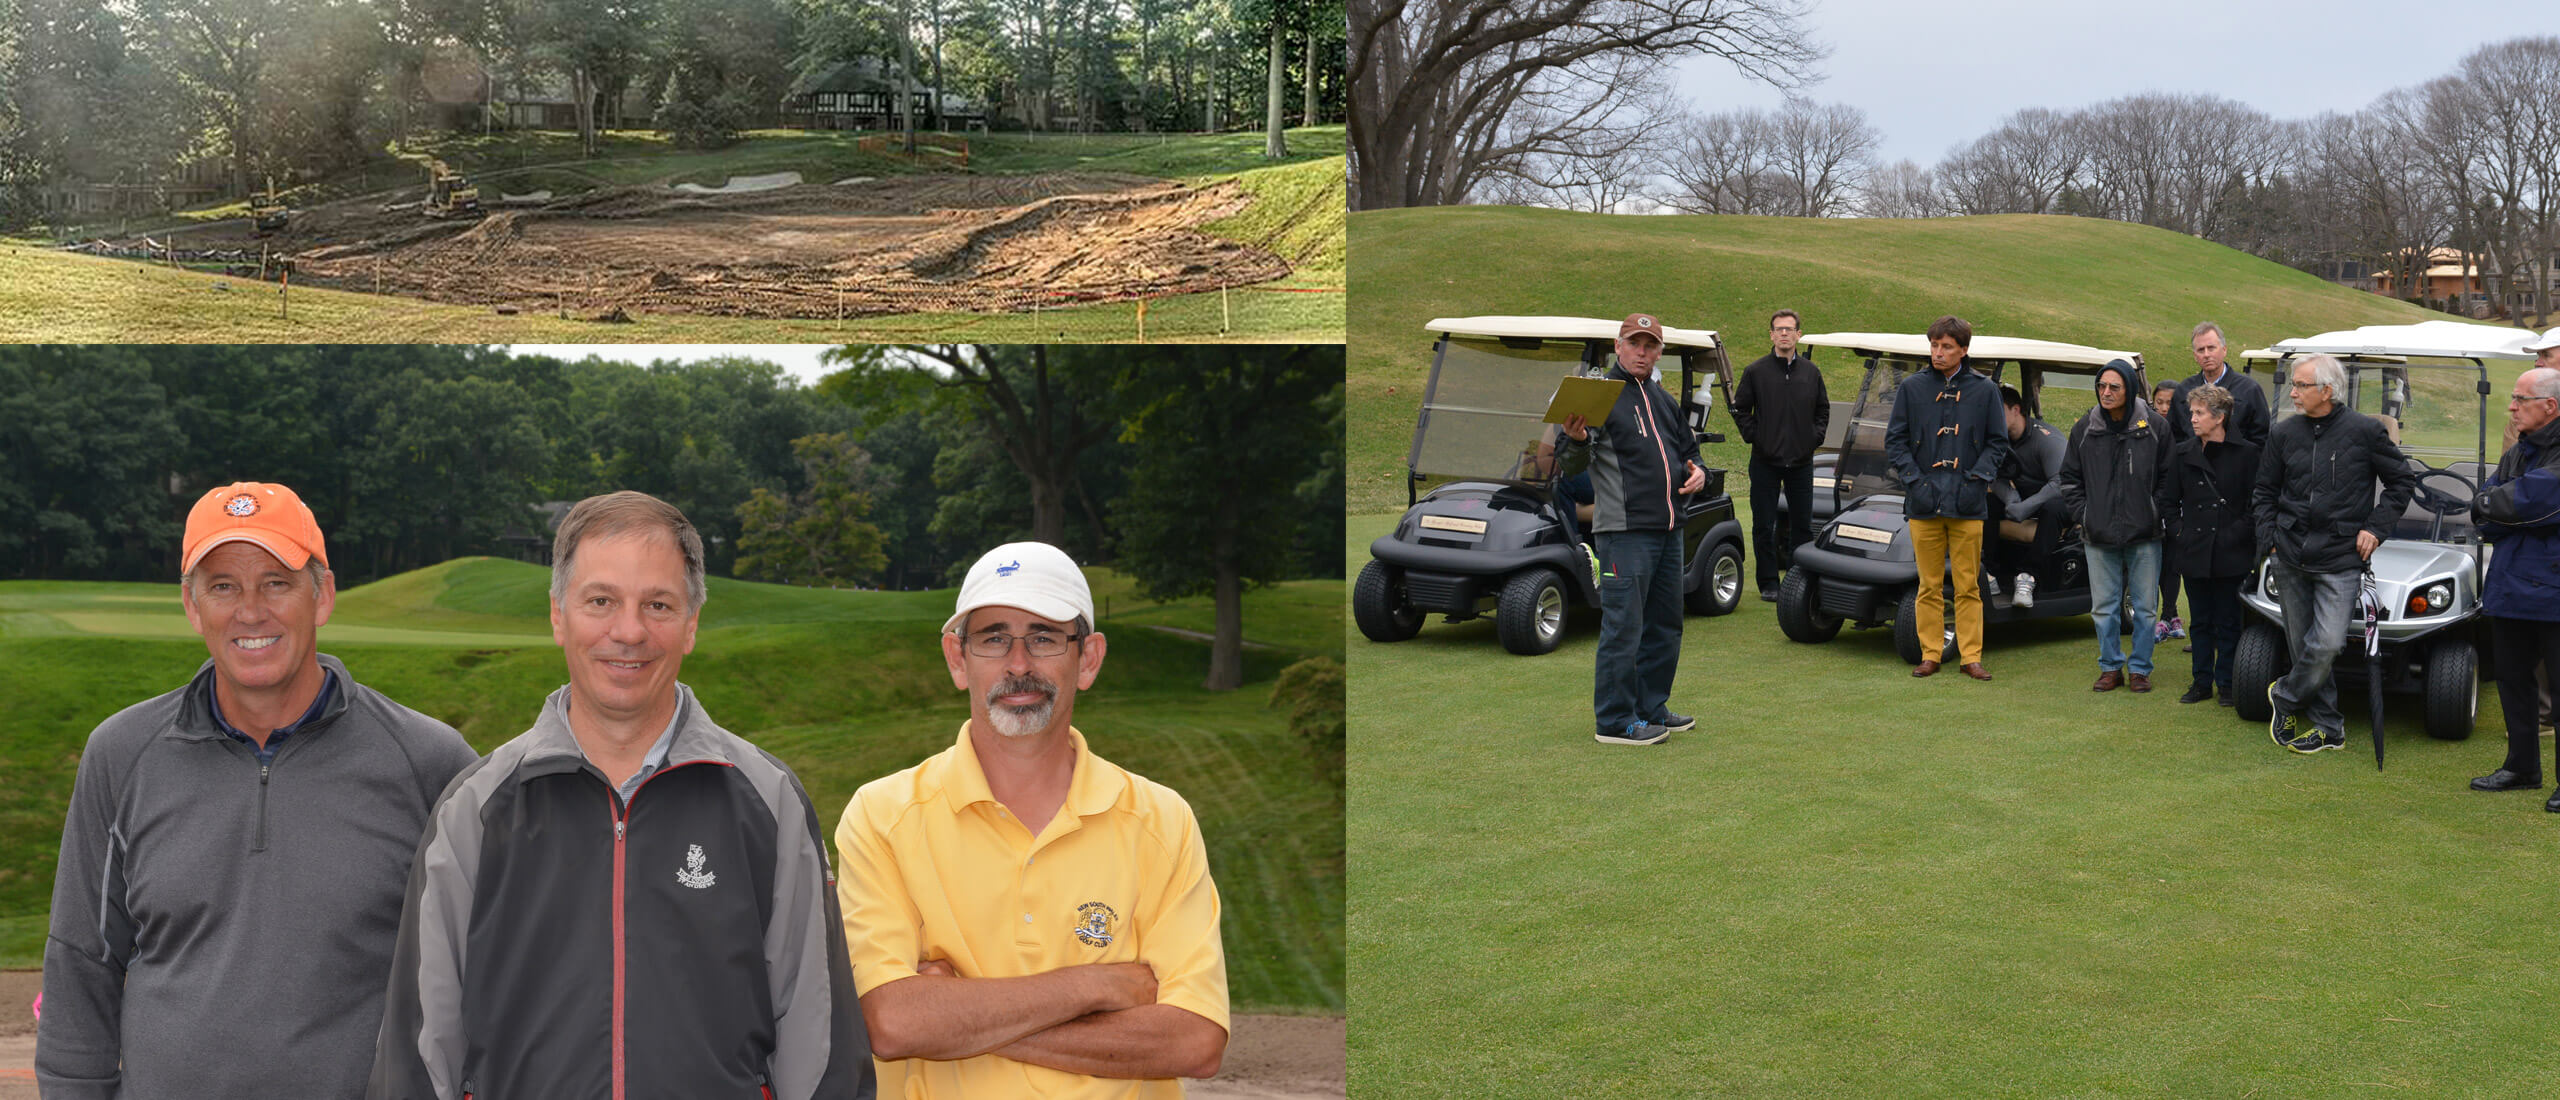 2014-2015 – The Greens Restoration Ushers in a New Era of Golf